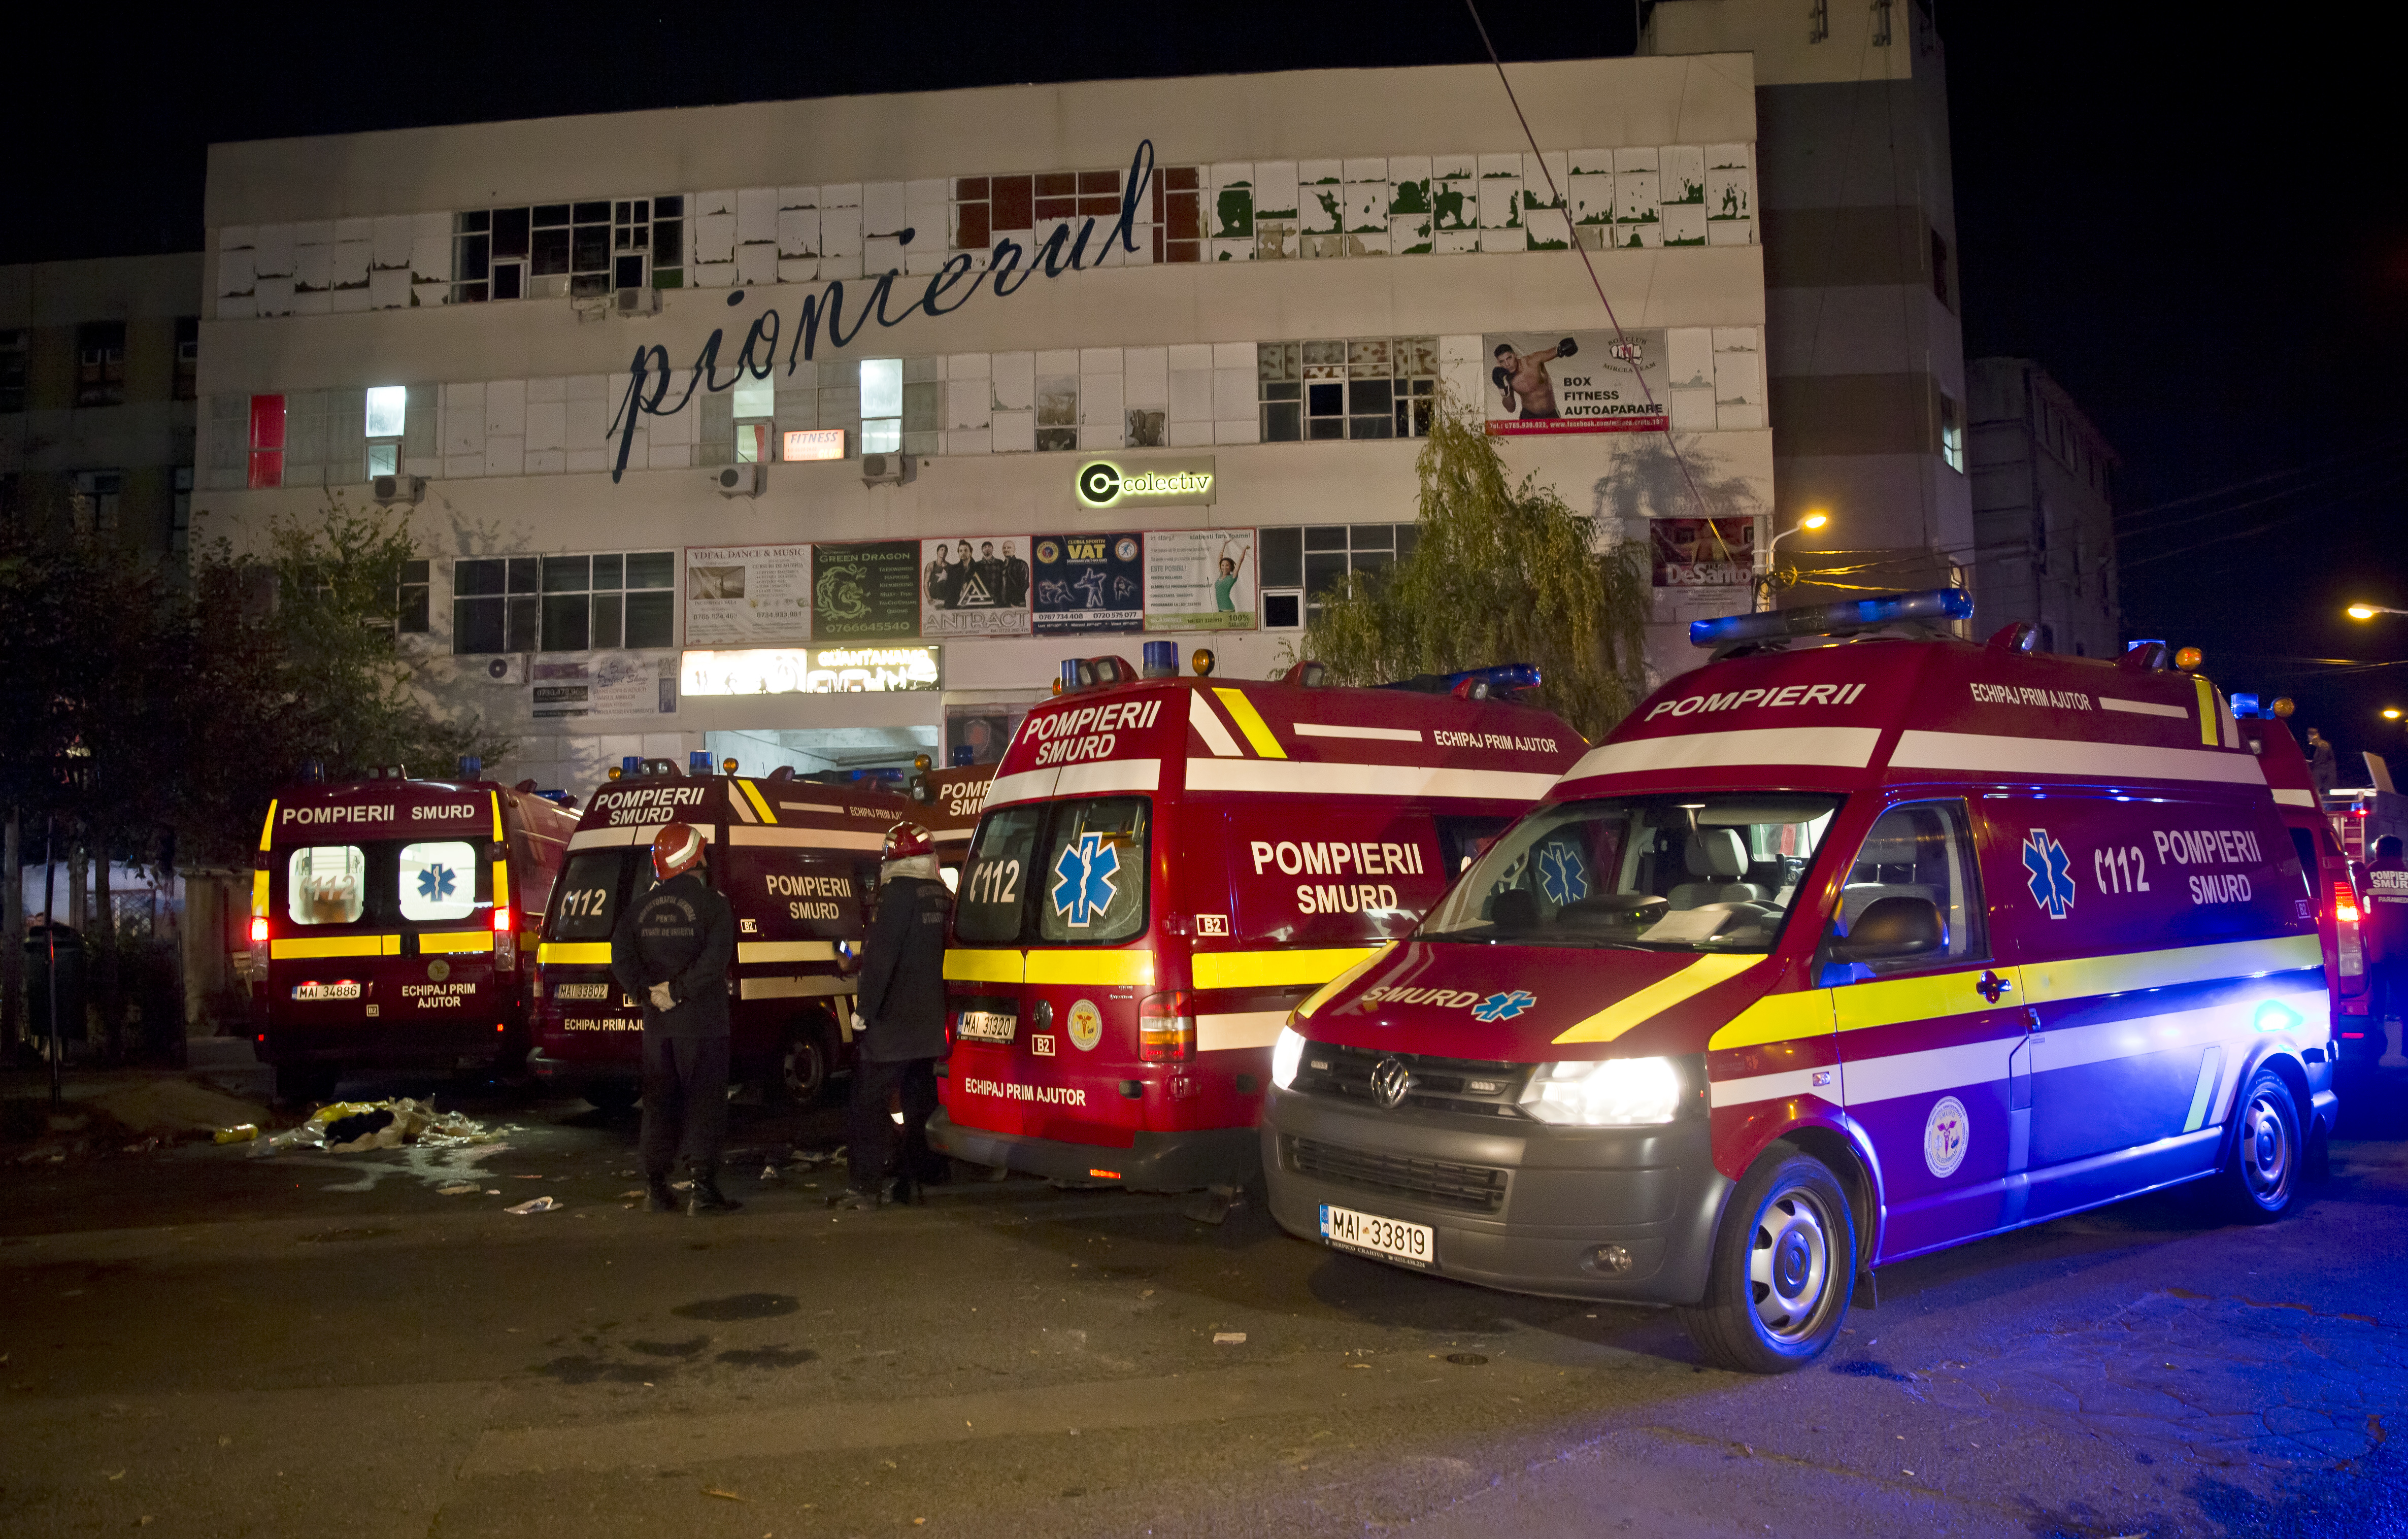 Ambulances are parked outside the site of a fire that occurred in a club, housed by the building in the background, in Bucharest.